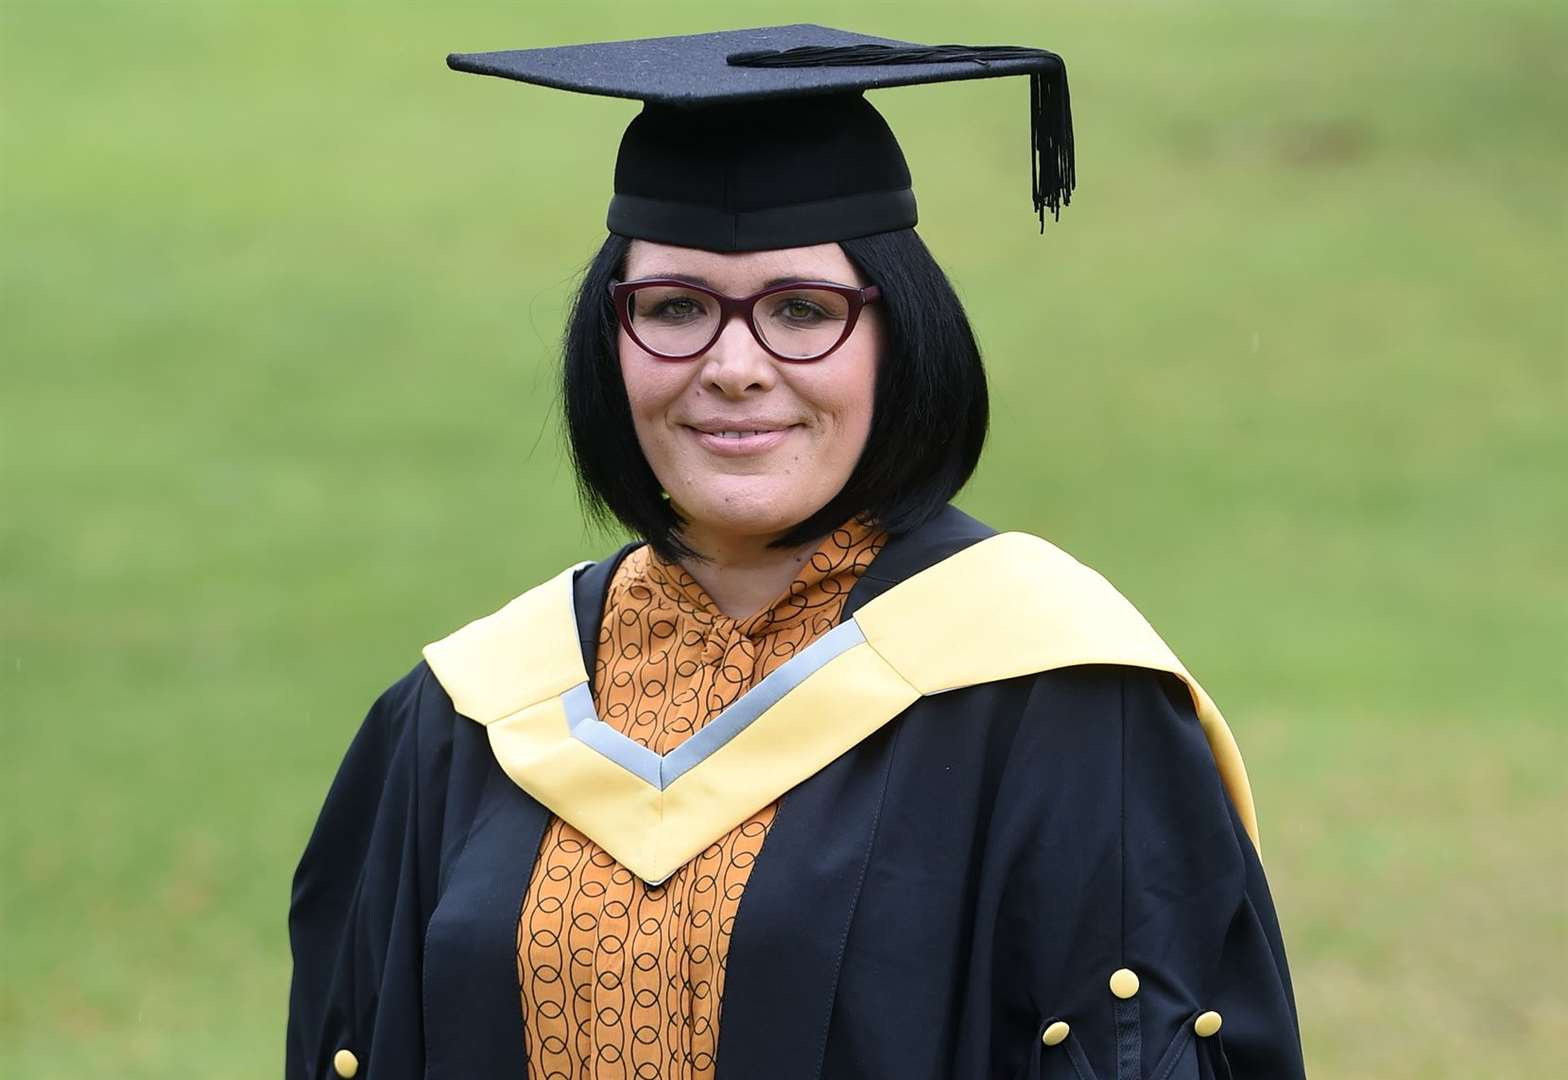 University graduate Alice overcomes adversity to win an award